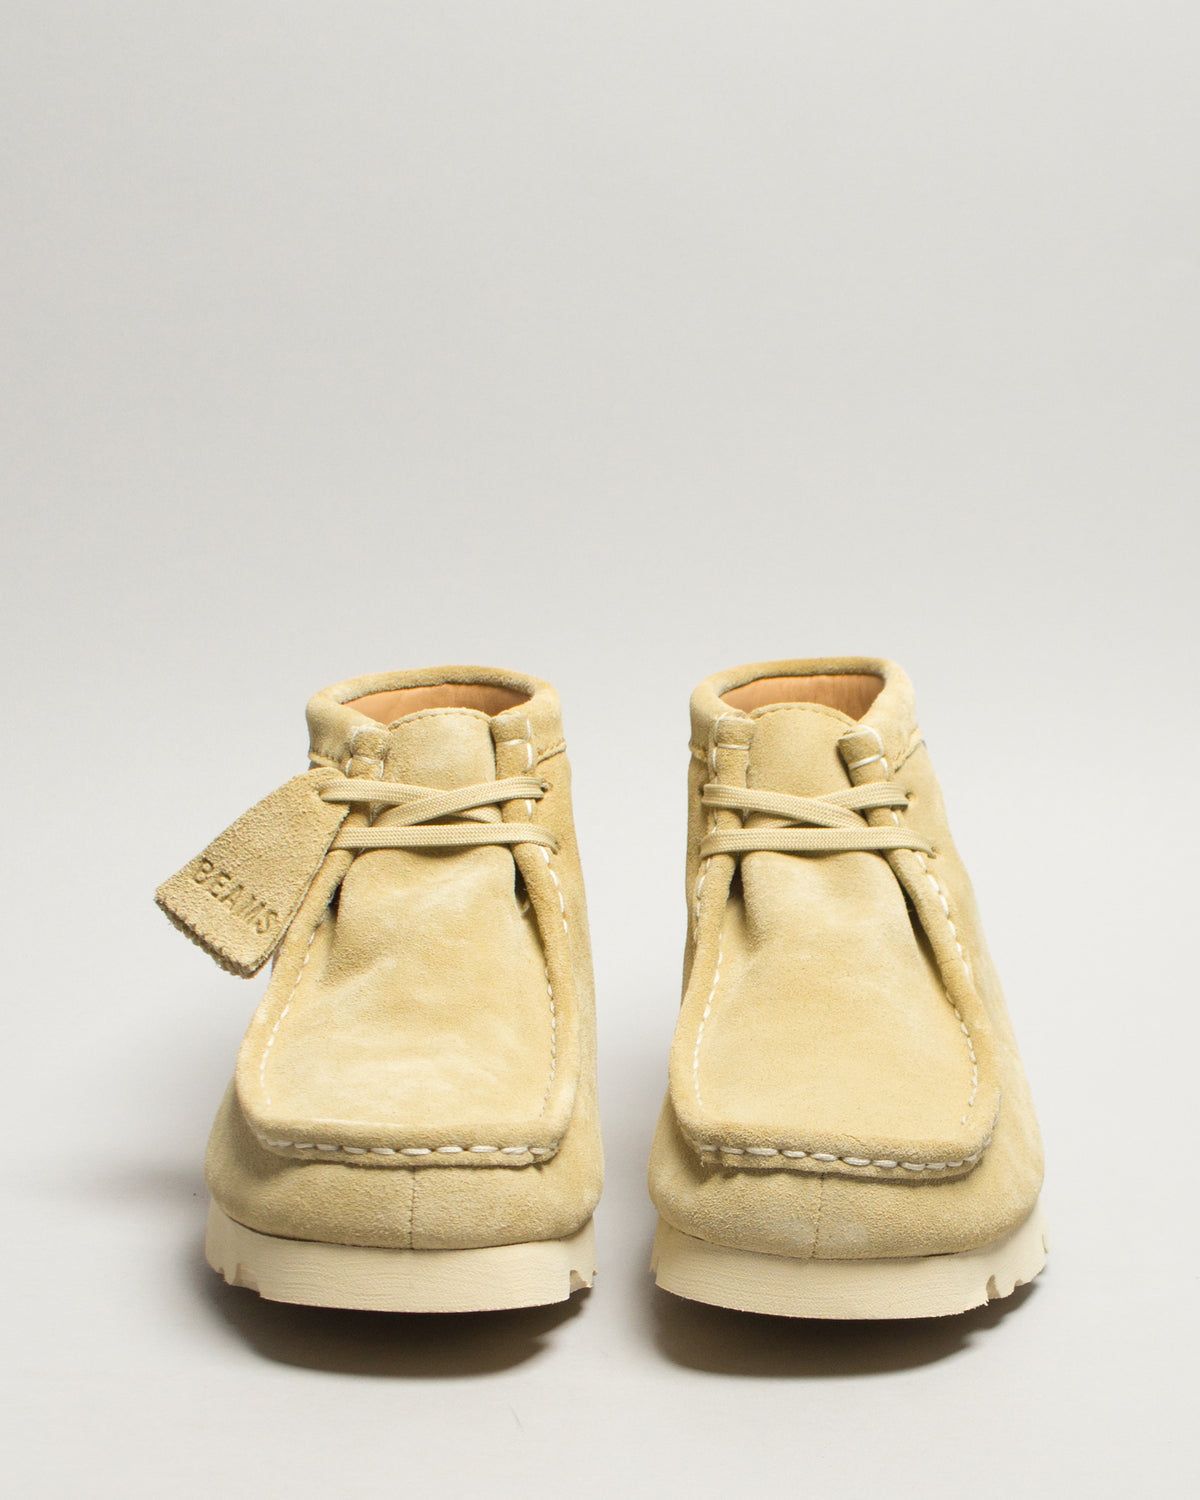 BEAMS Wallabee BT GTX Maple